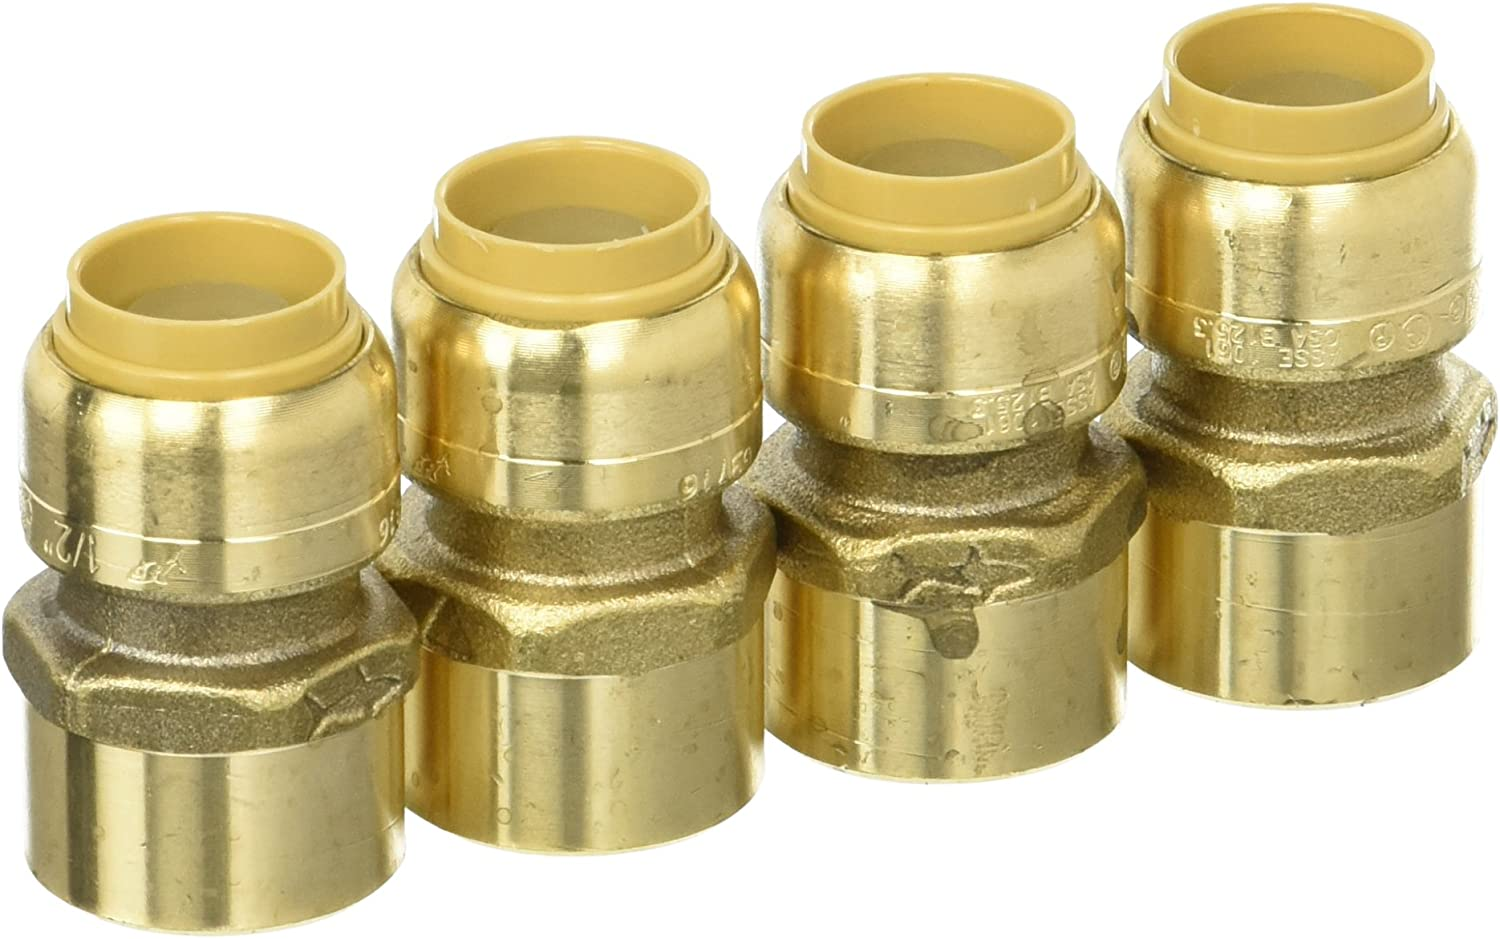 """1//2/"""" SharkBite Style Push to Connect LEAD FREE BRASS CAPS Plumbing Connector 5"""